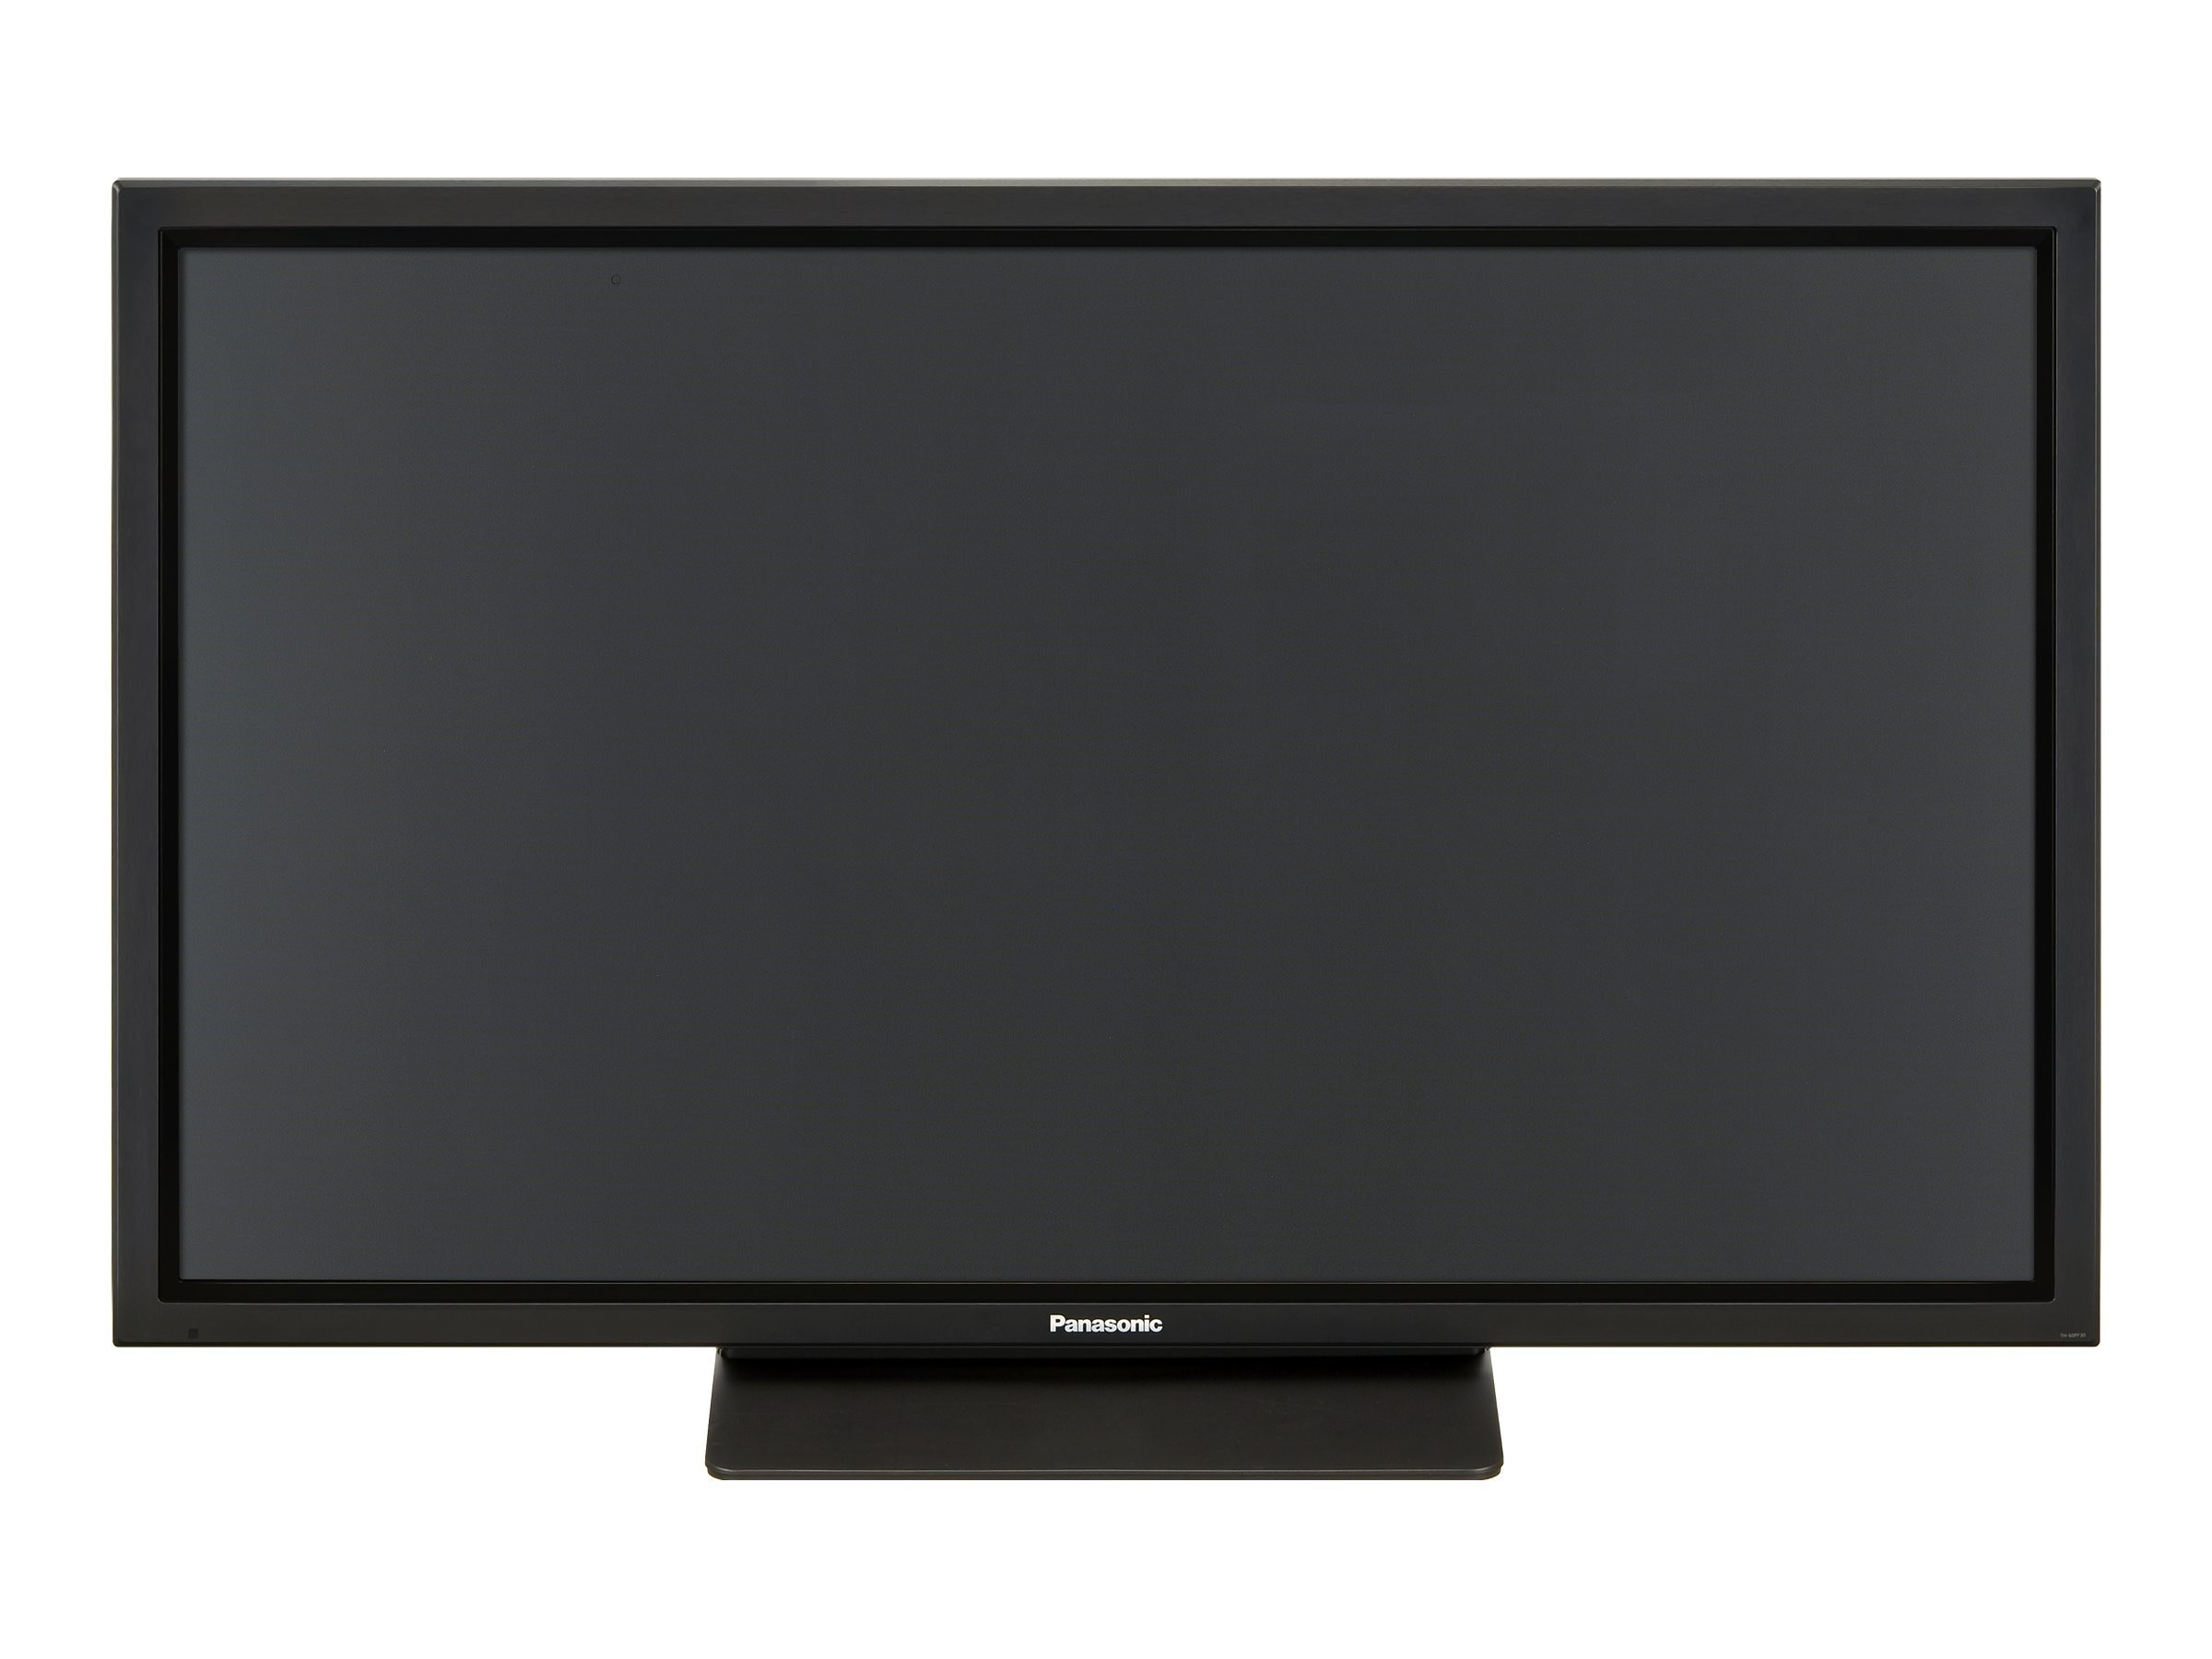 Panasonic TH60PF30U Image 1